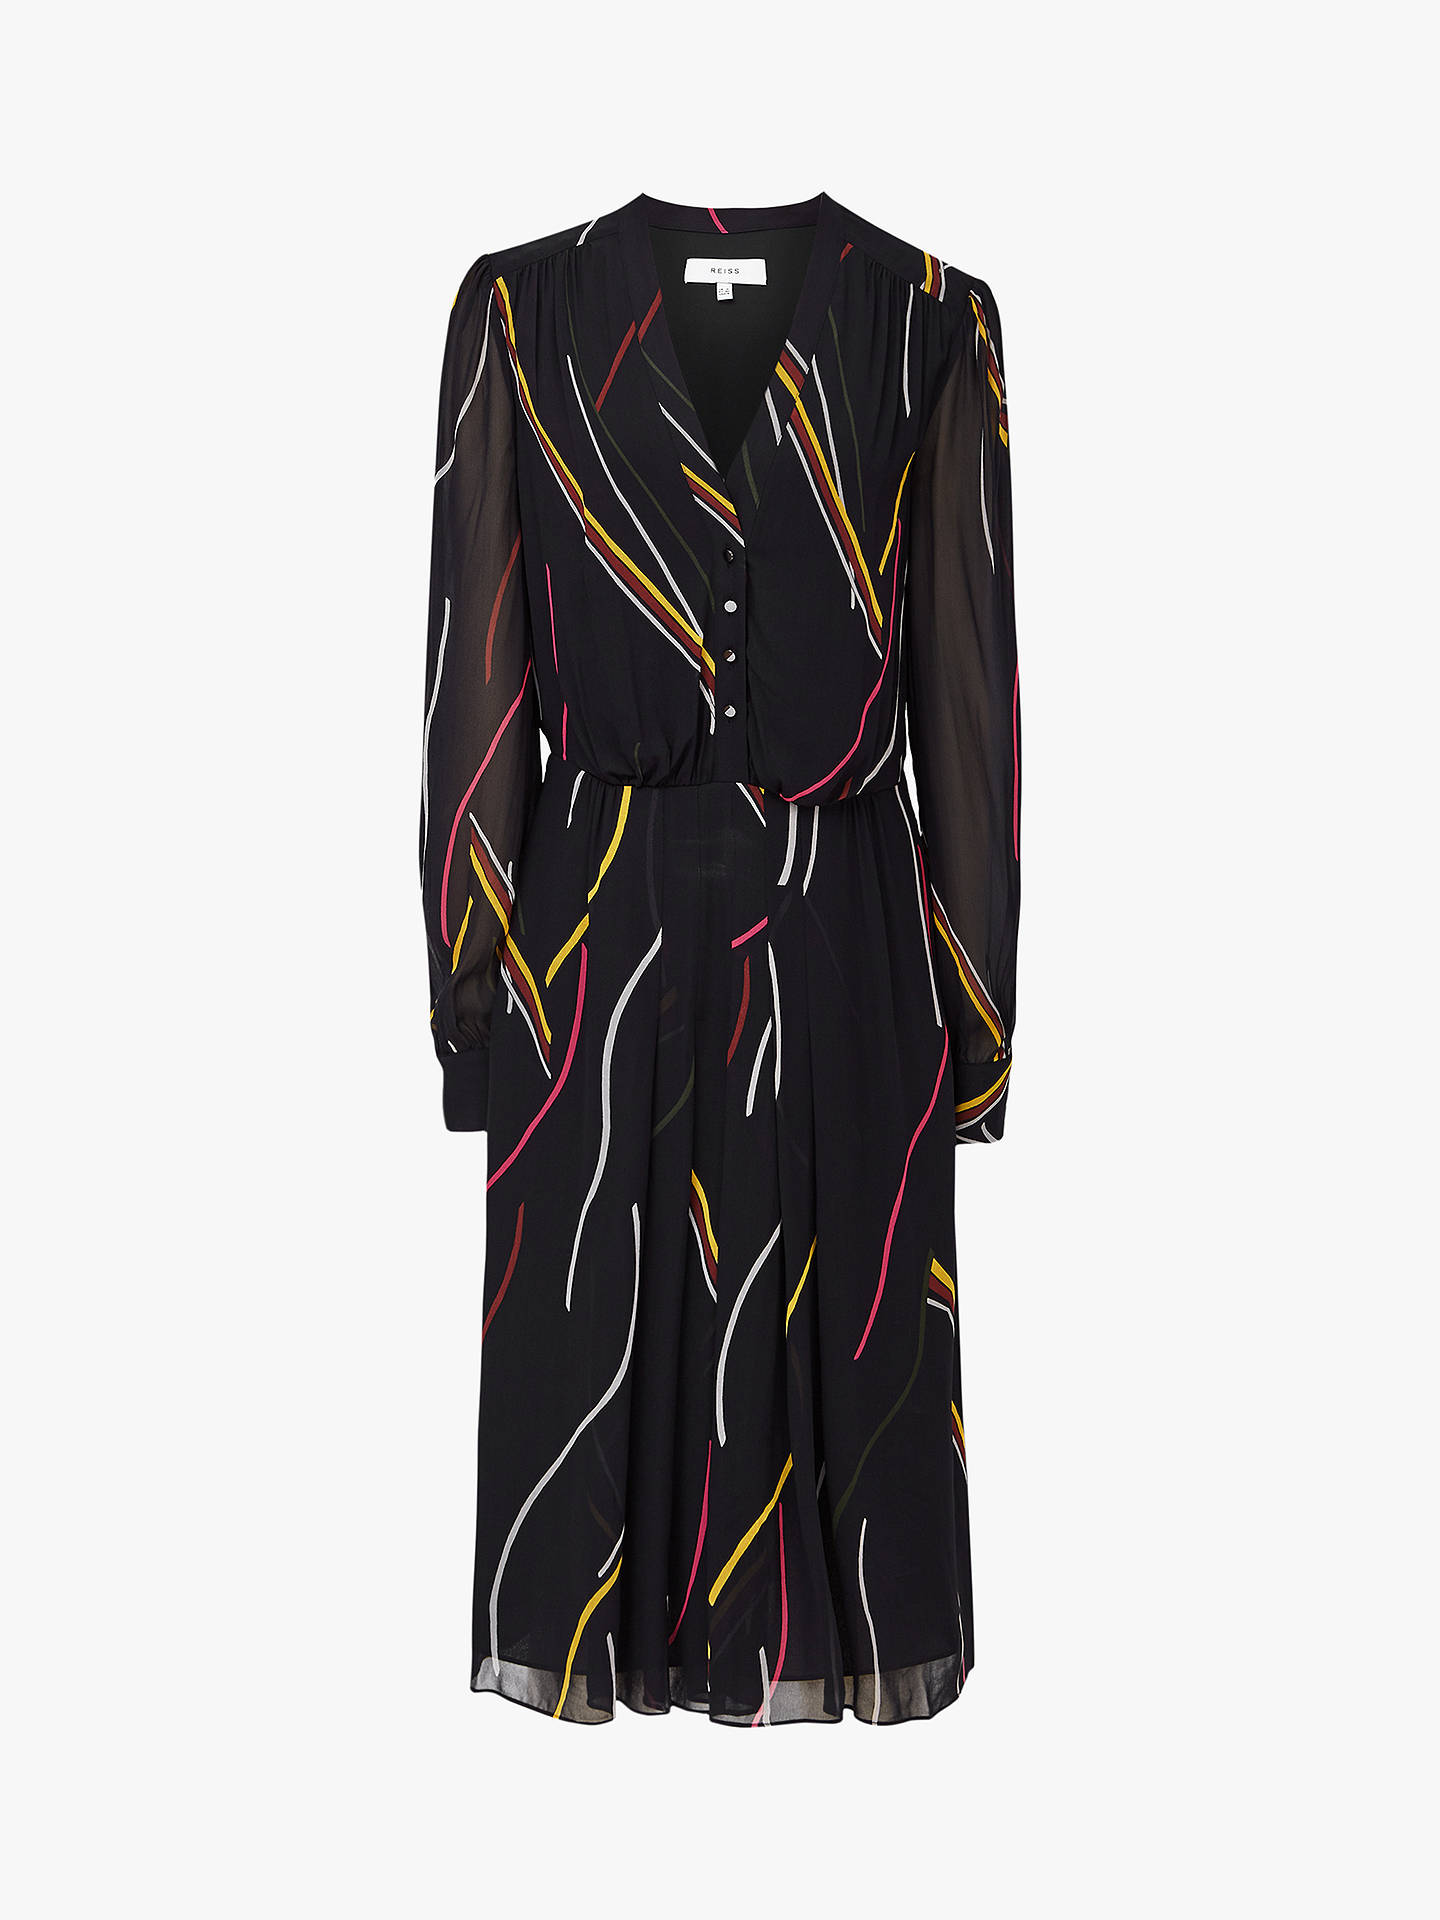 BuyReiss Caralisa Stripe Dress, Multi, 6 Online at johnlewis.com